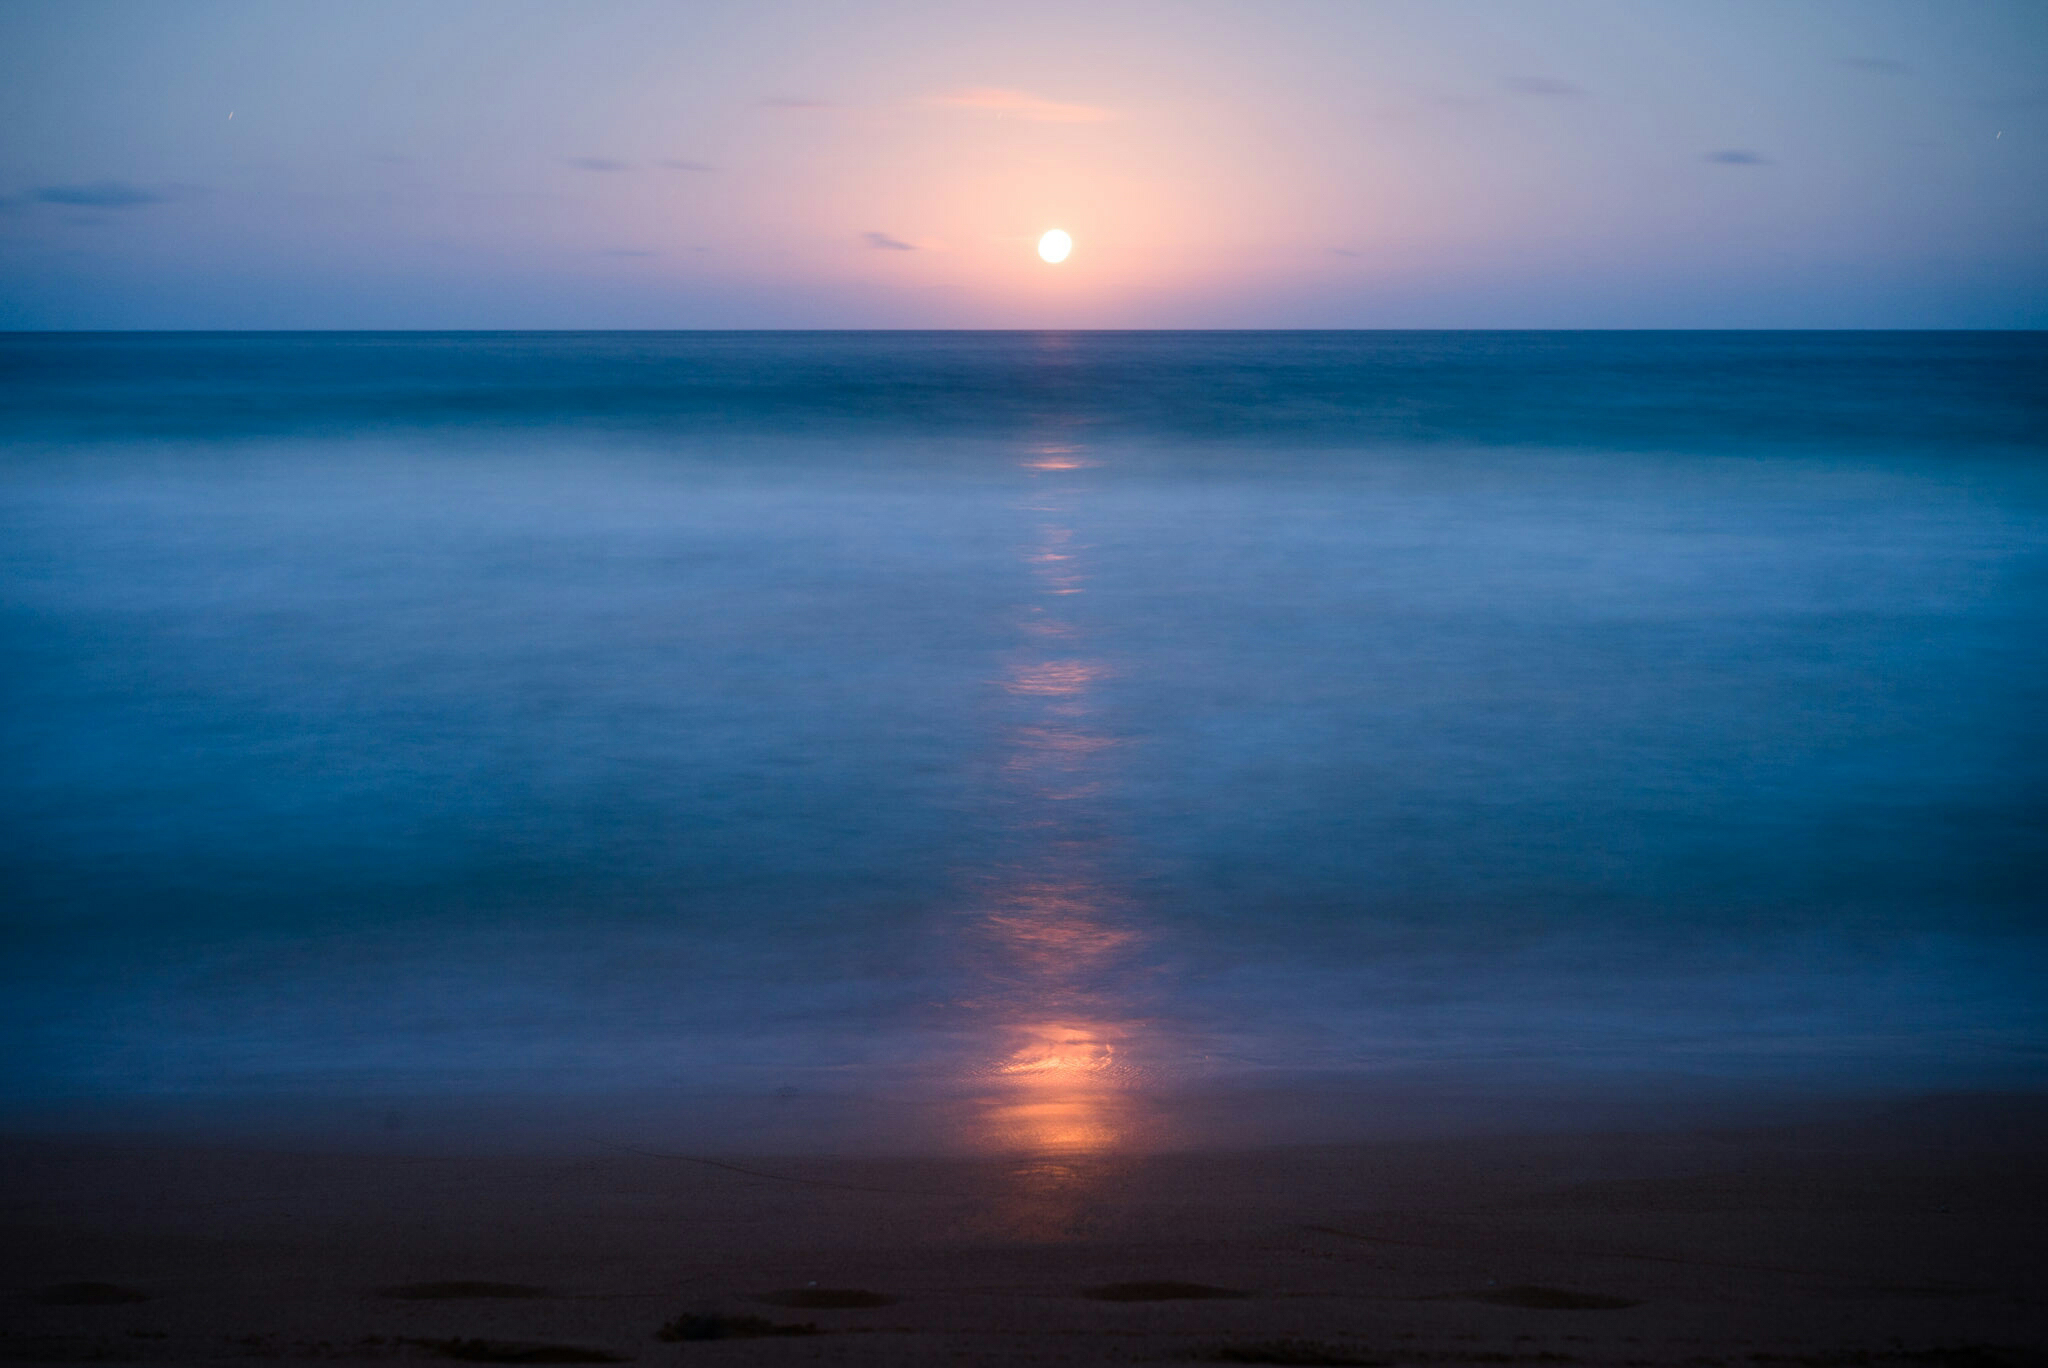 Moon rise on Kealia beach in Kauai, Hawaii